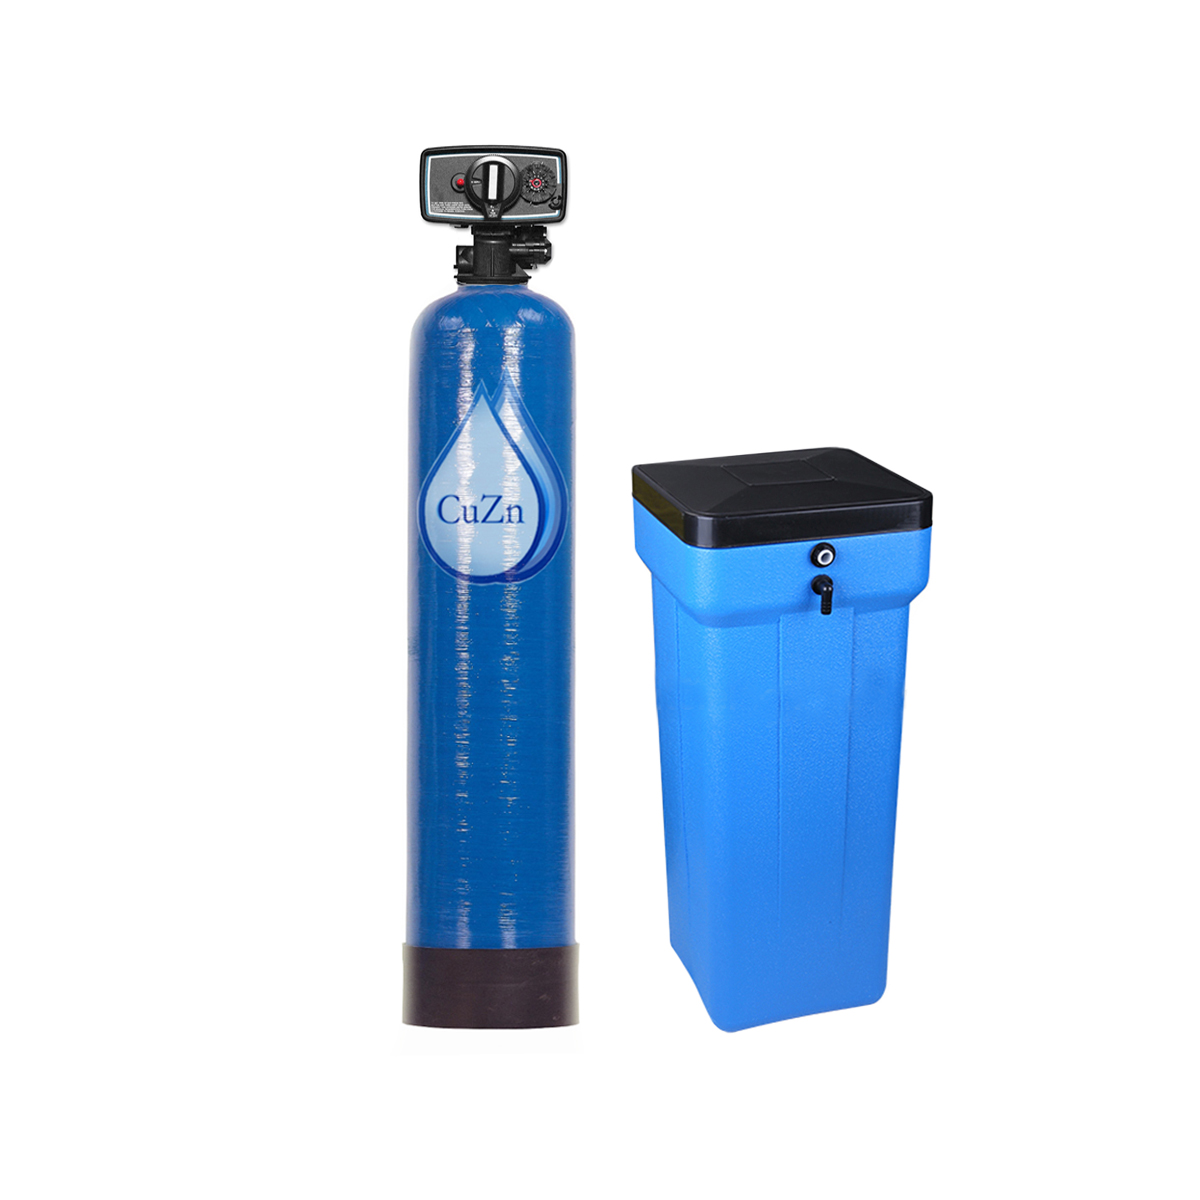 whwss bw traditional ion exchange salt based water softening system